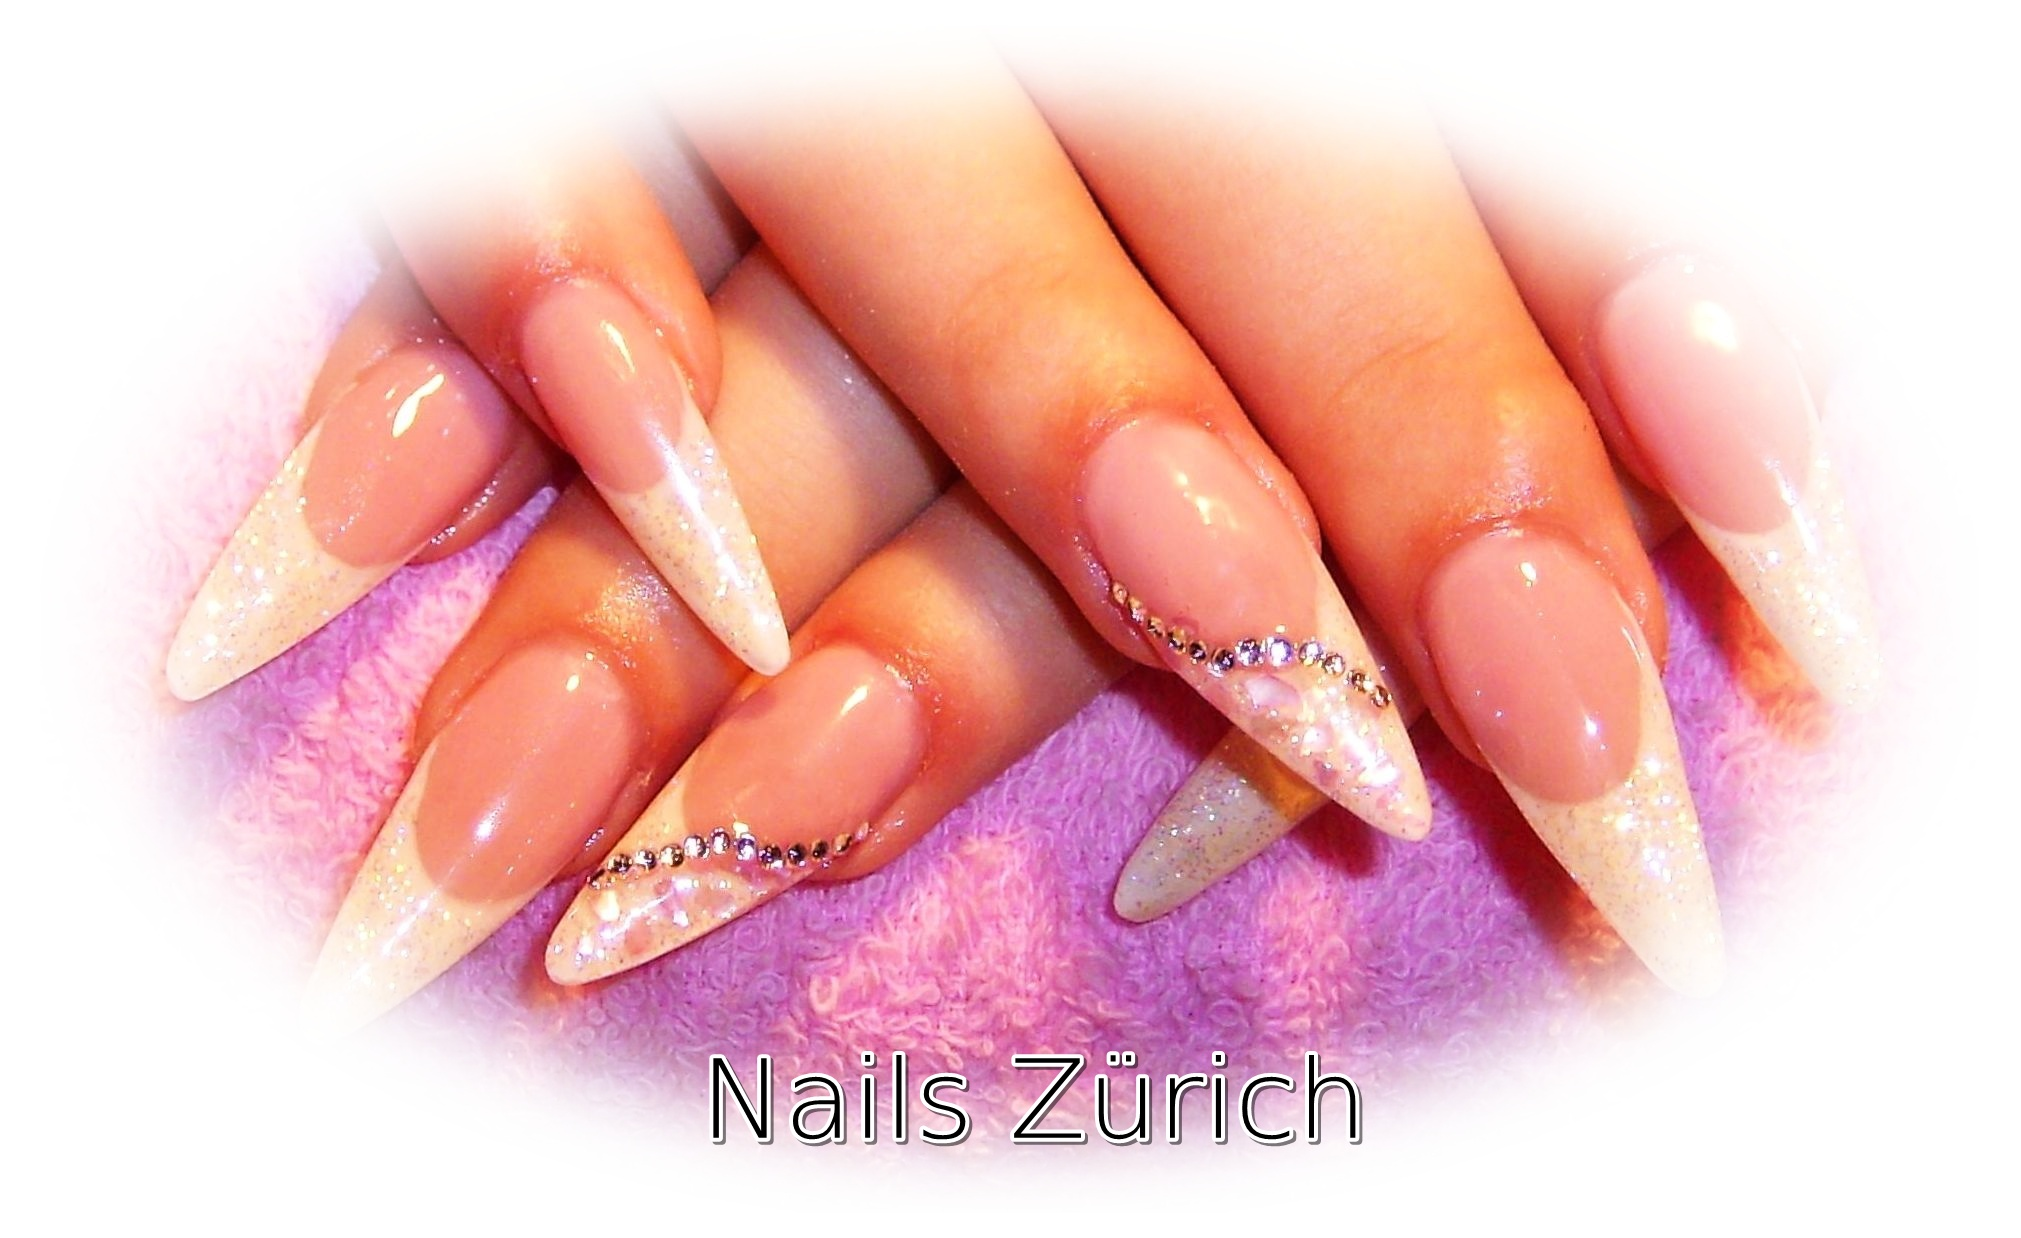 Nikike white nails Zürich